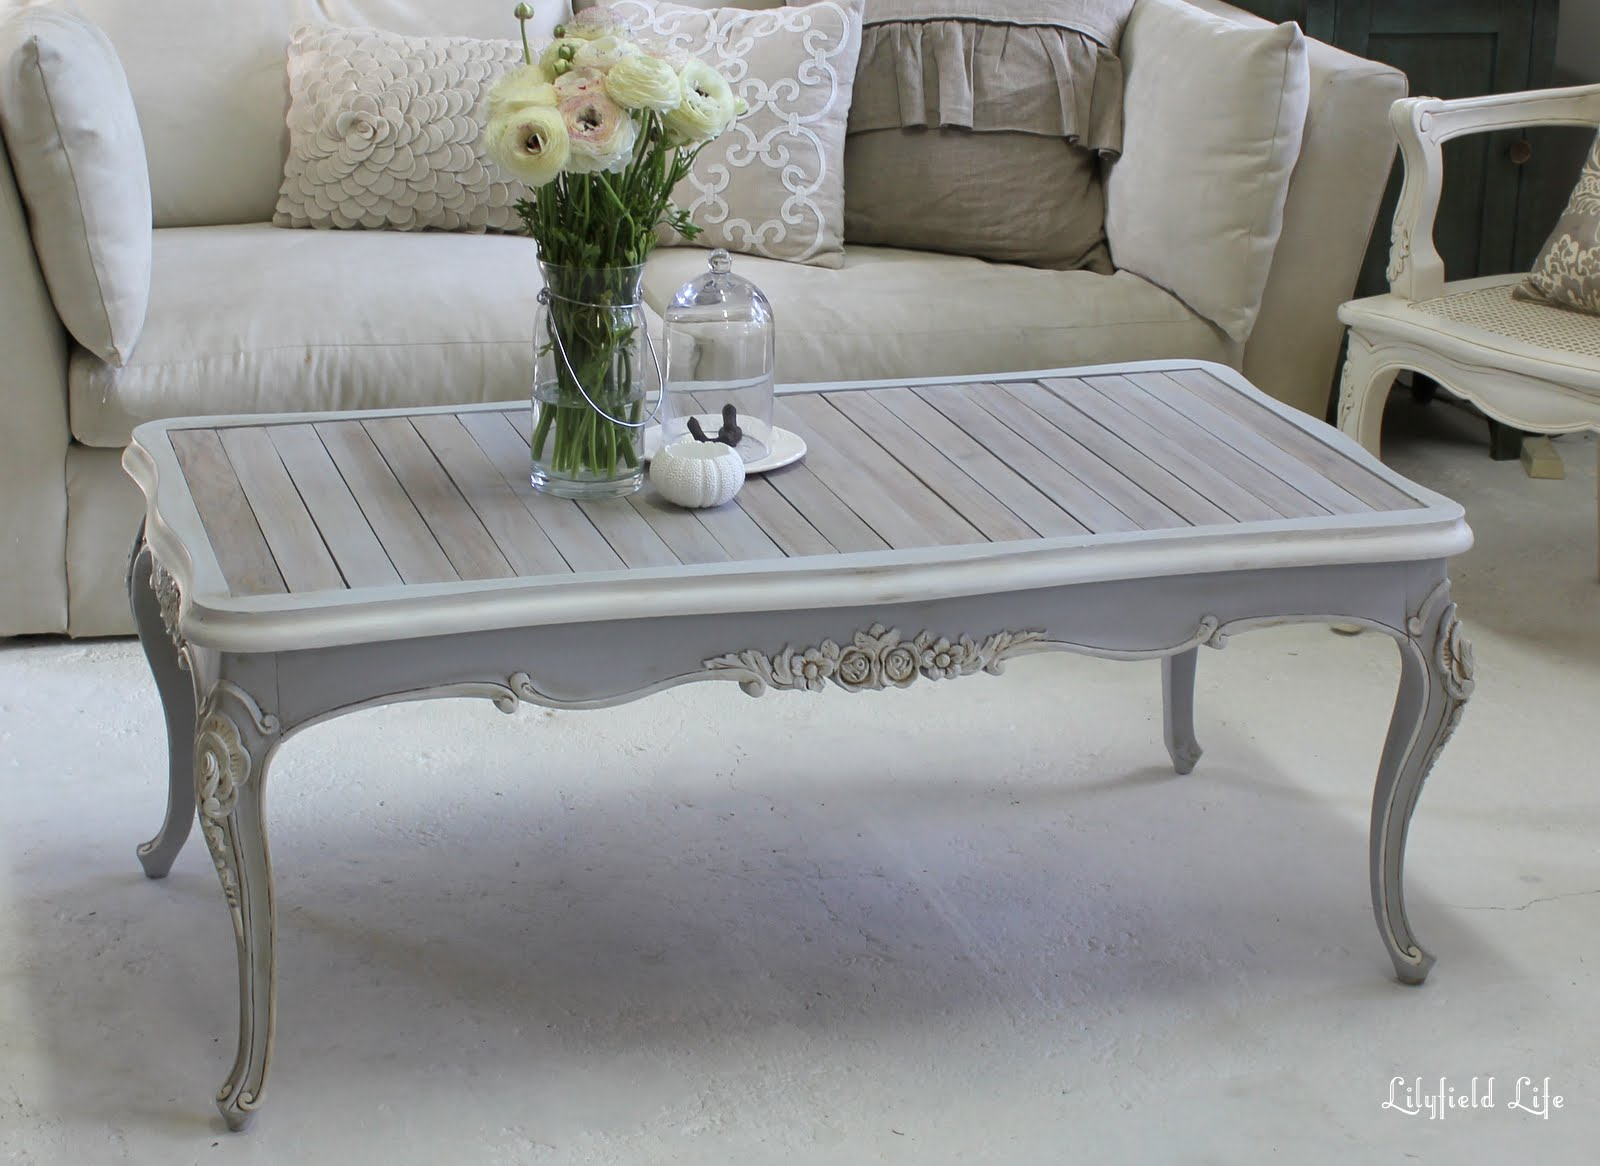 Lilyfield Life: BBQ Table Meets Coffee Table